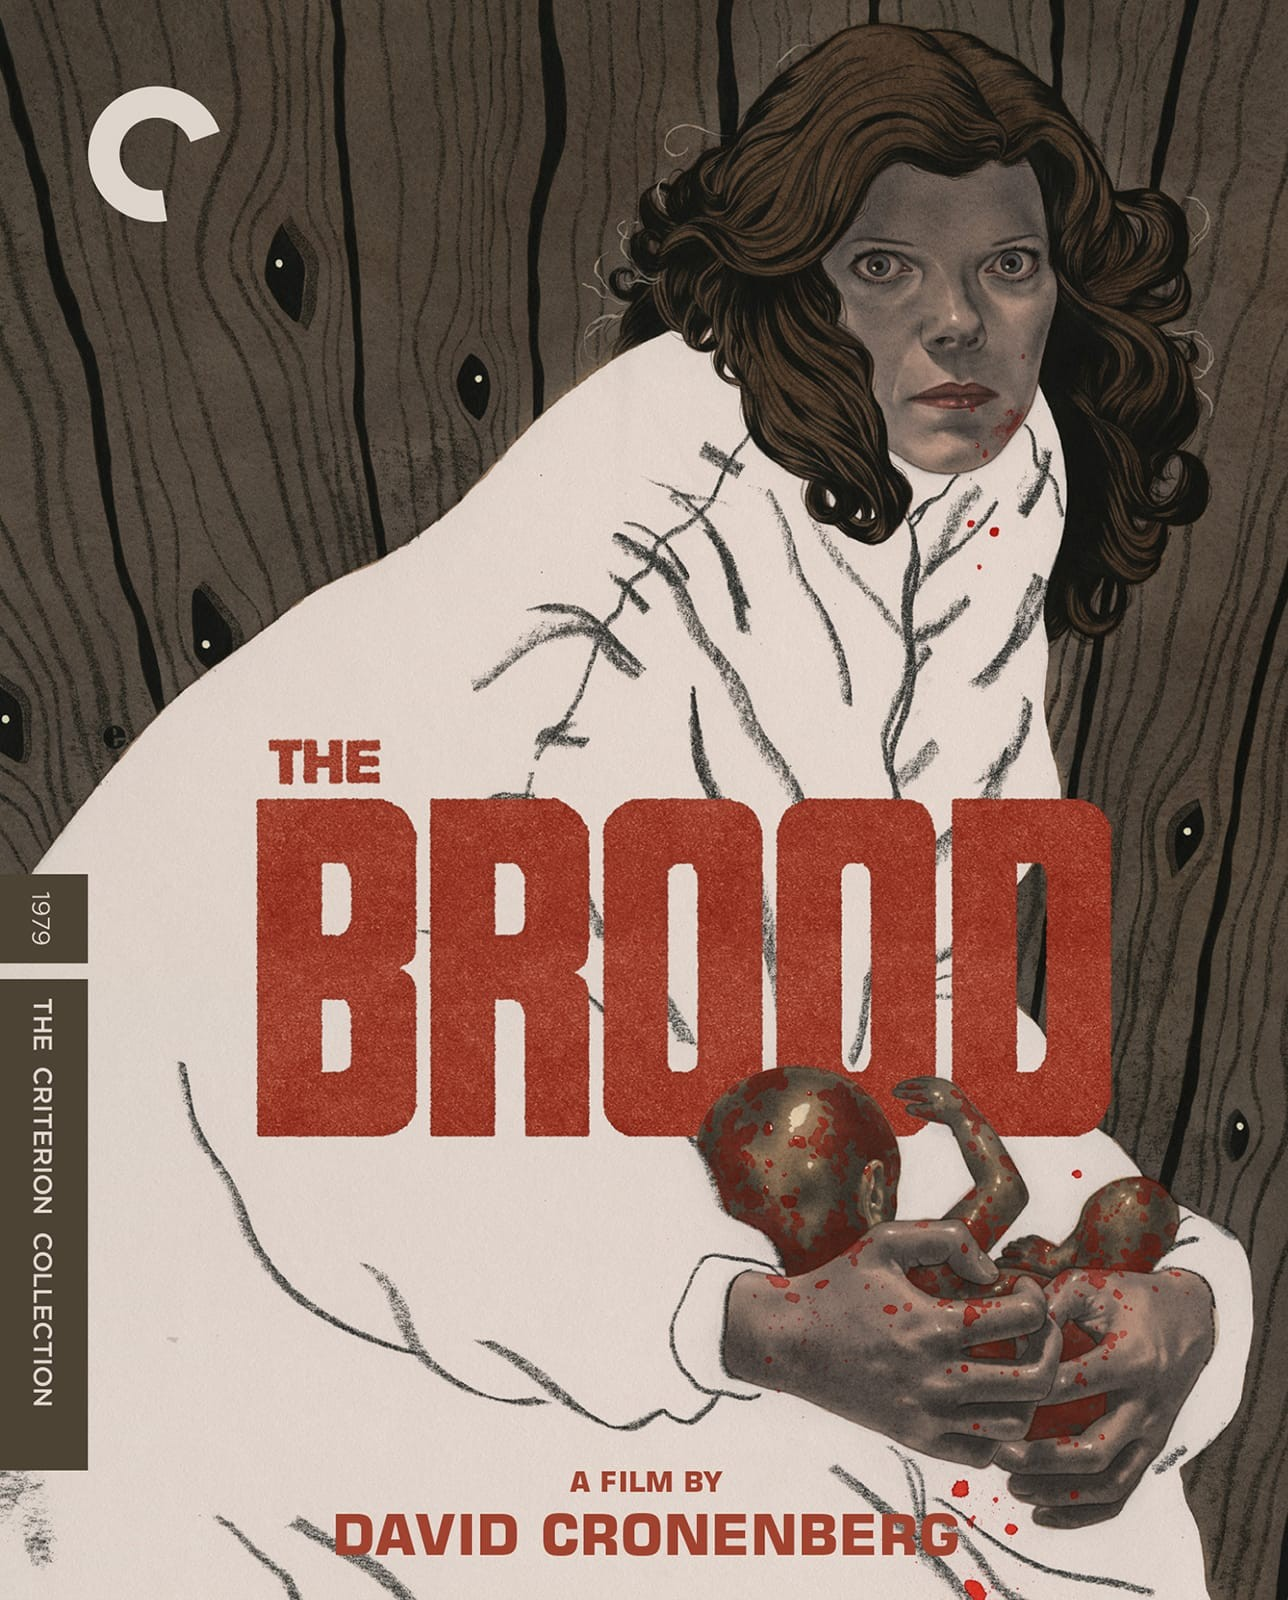 The Brood (1979) | The Criterion Collection